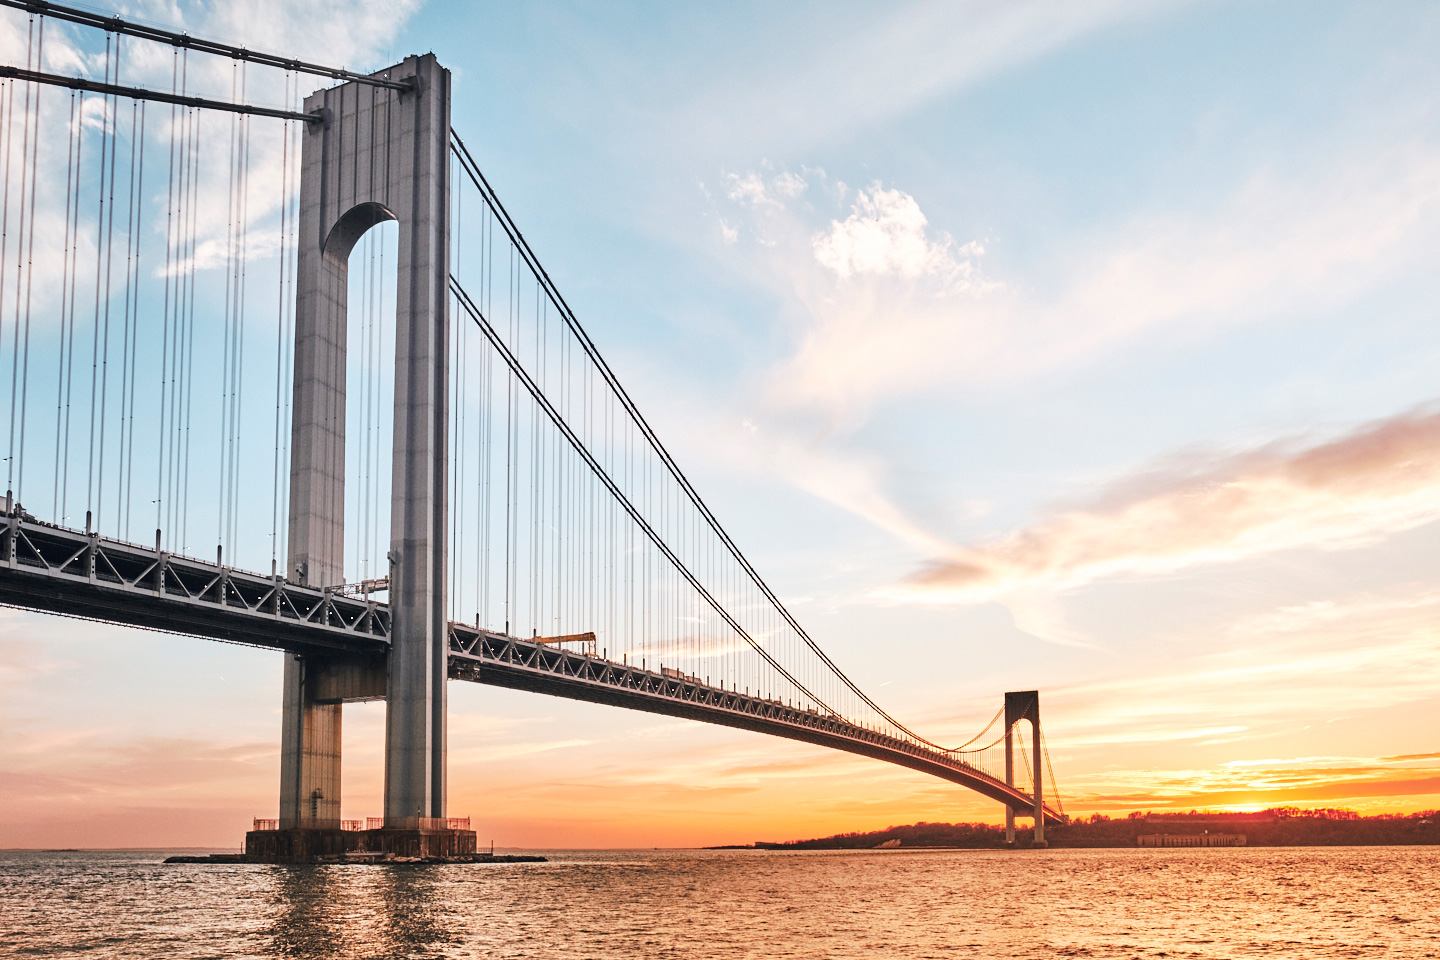 New York Verrazano Bridge Travel Photographer Marcus Lewis web-80-percent